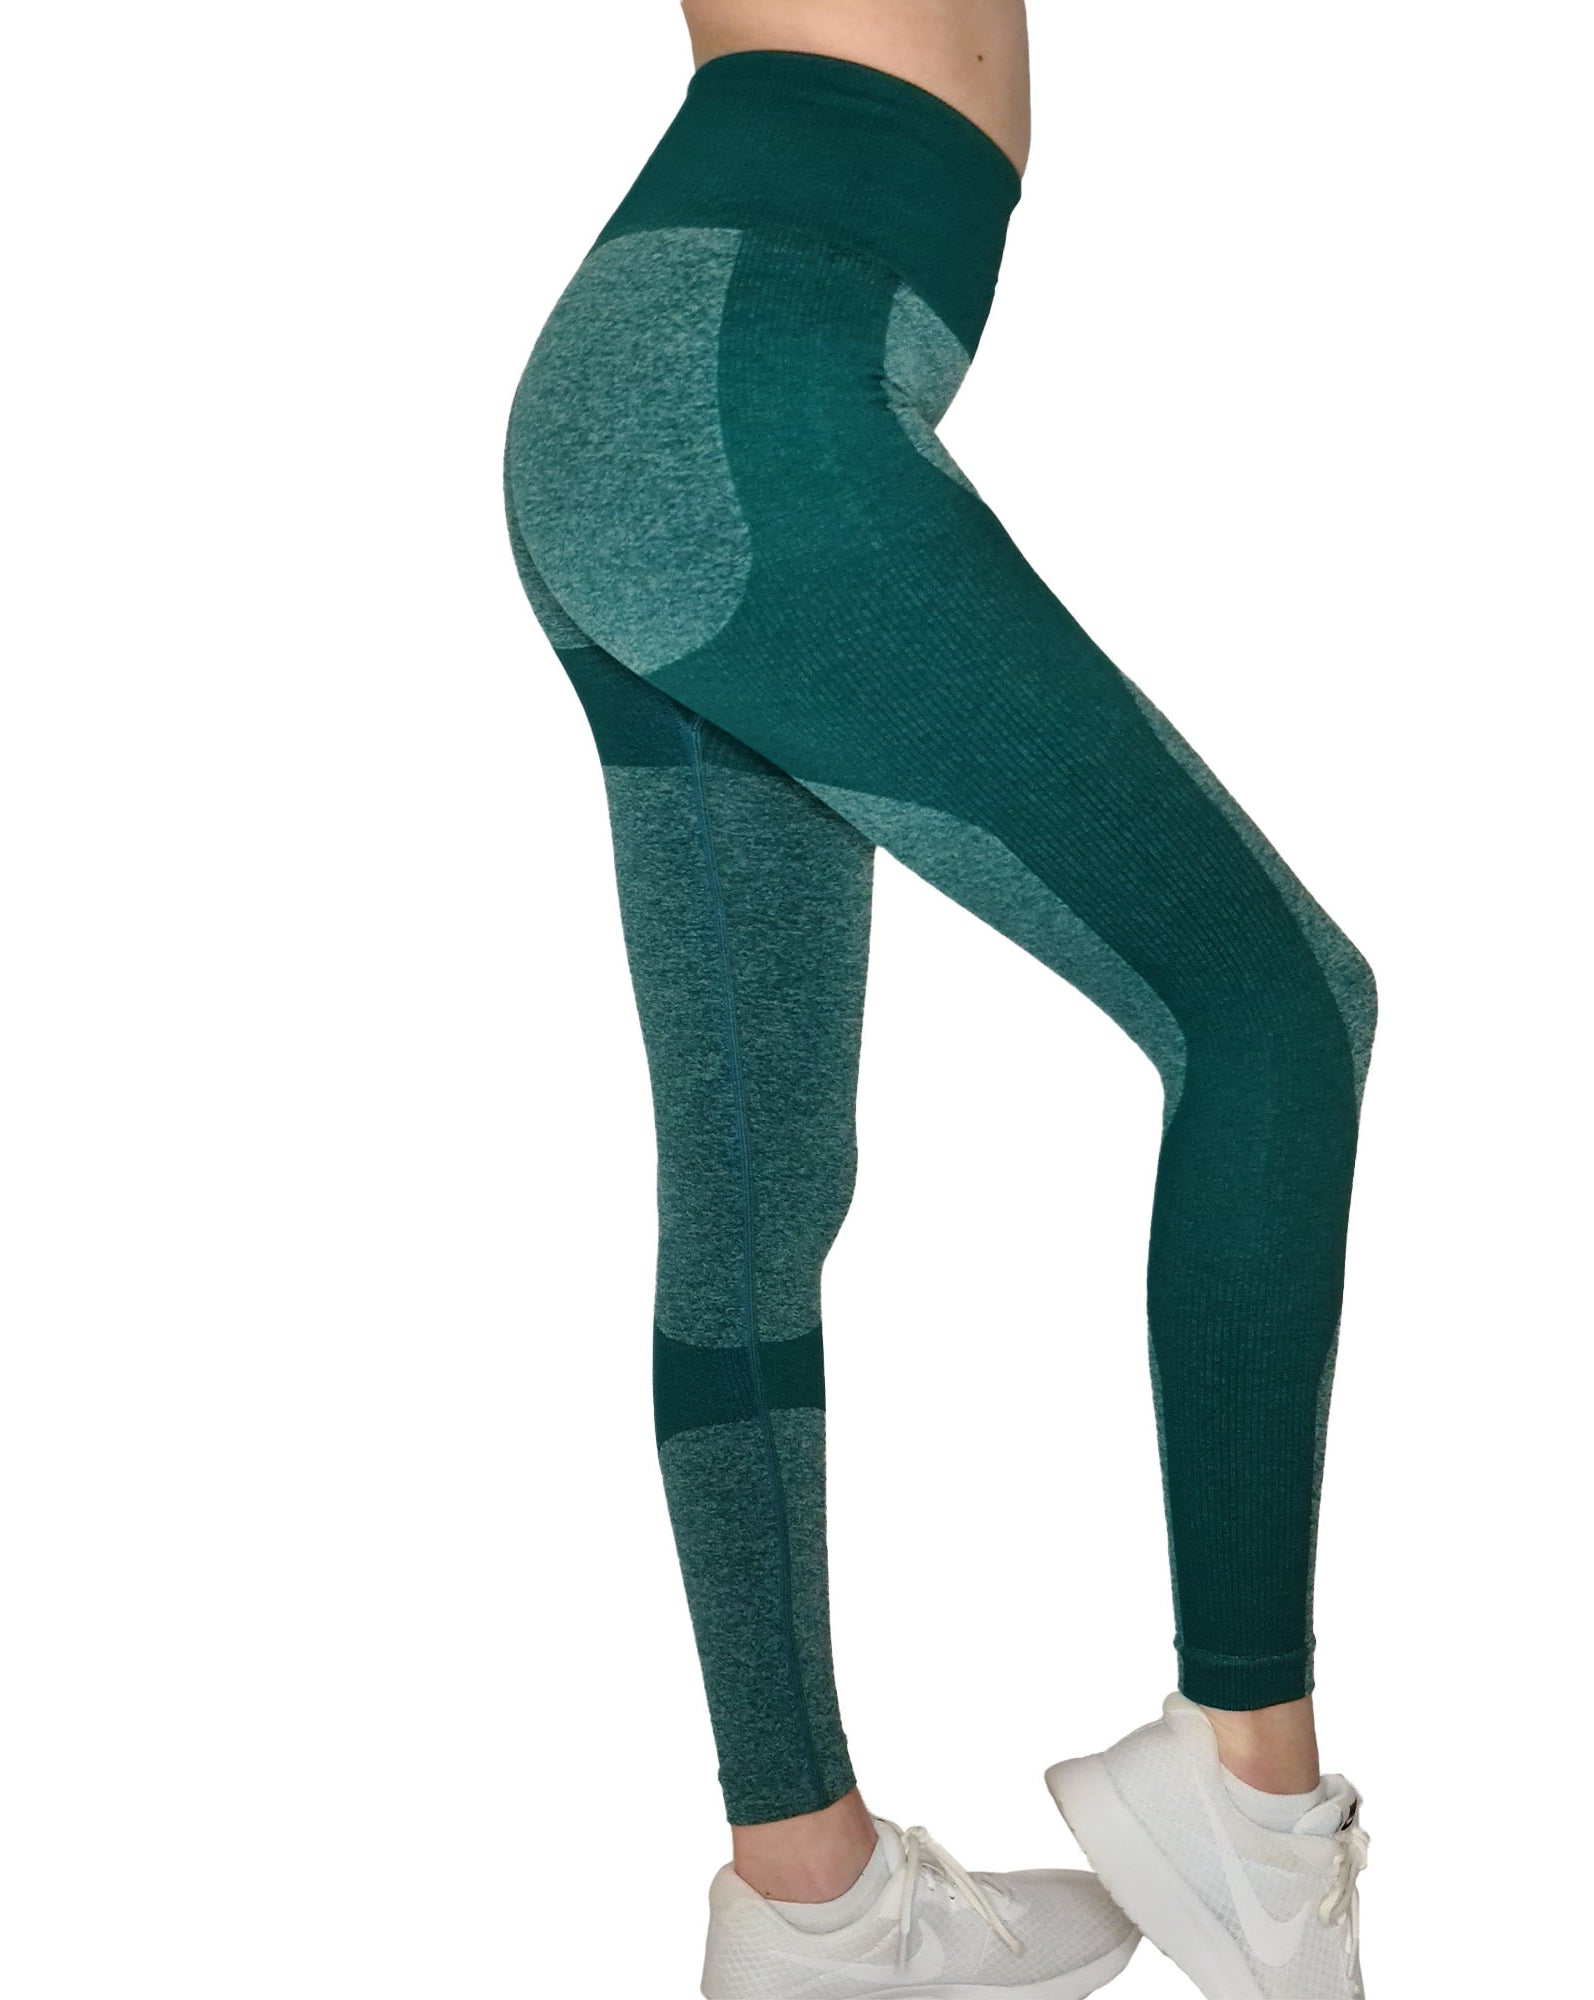 EVIE TEAL SEAMLESS HOME WORKOUT LEGGINGS-ARTEMIS CLASSIC COLLECTION